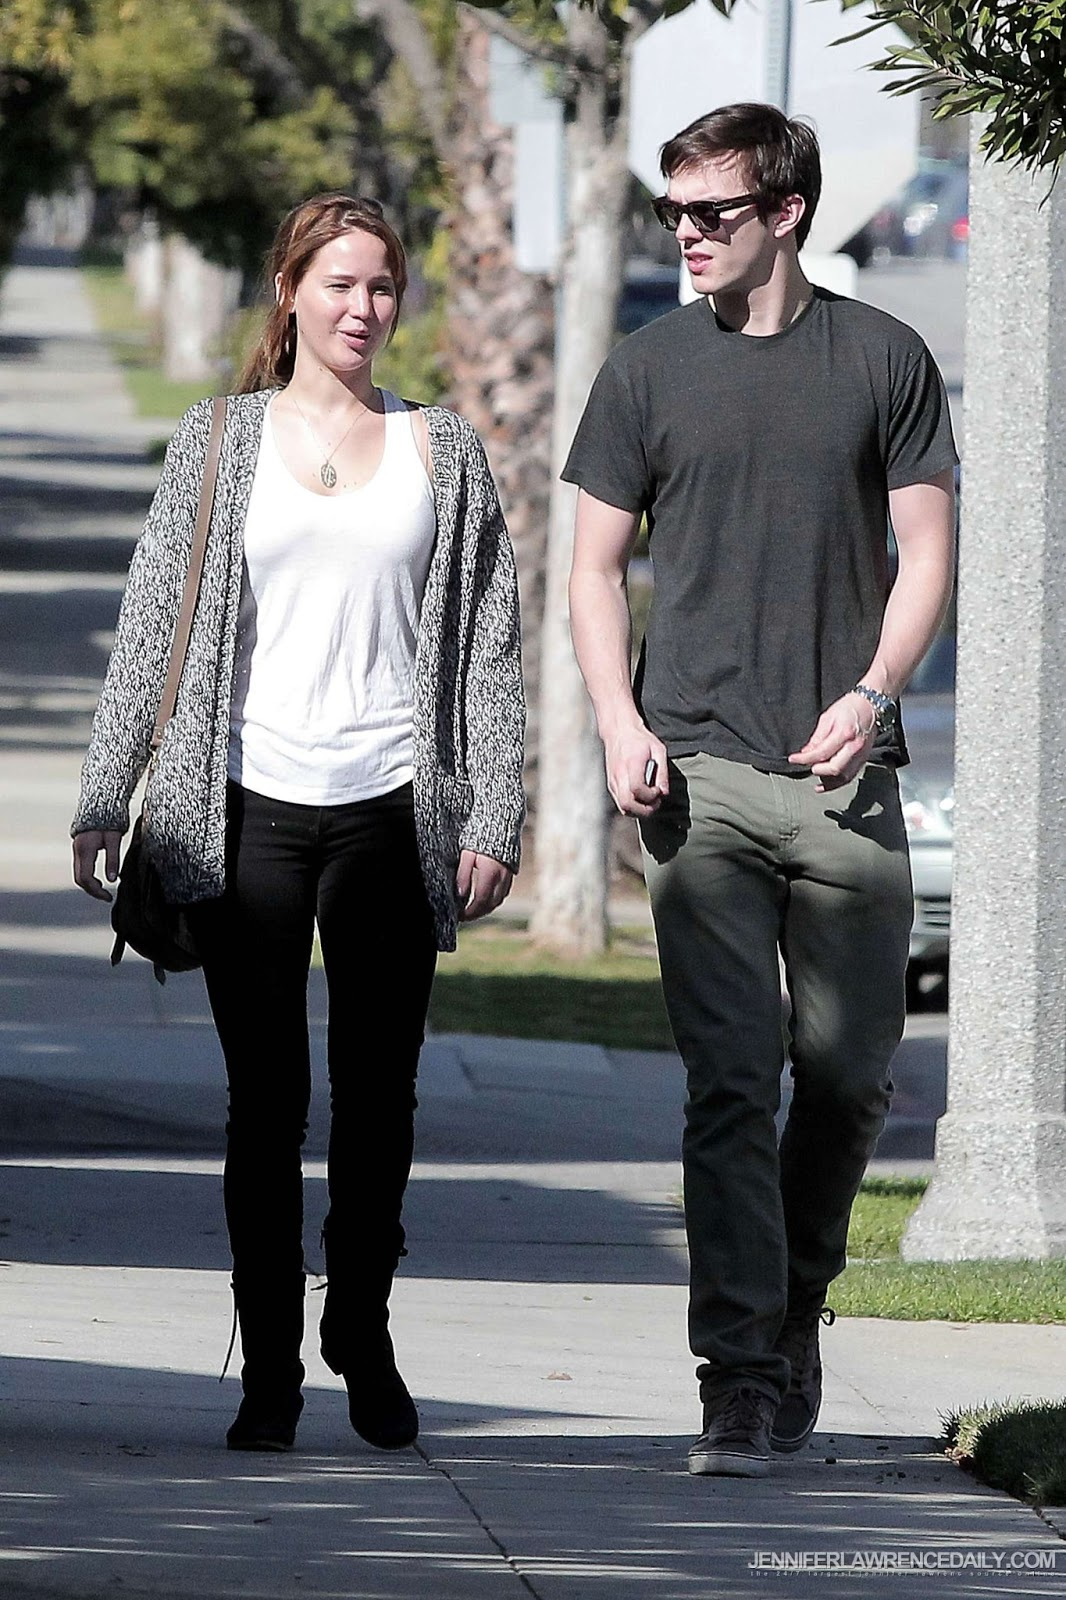 http://2.bp.blogspot.com/-rrlfWwqDMQI/UO8j9eilcdI/AAAAAAAASMg/jwCfdsTvarI/s1600/In-Los-Angeles-with-Nicholas-Hoult-February-14-2012-jennifer-lawrence-29117250-1700-2550.jpg